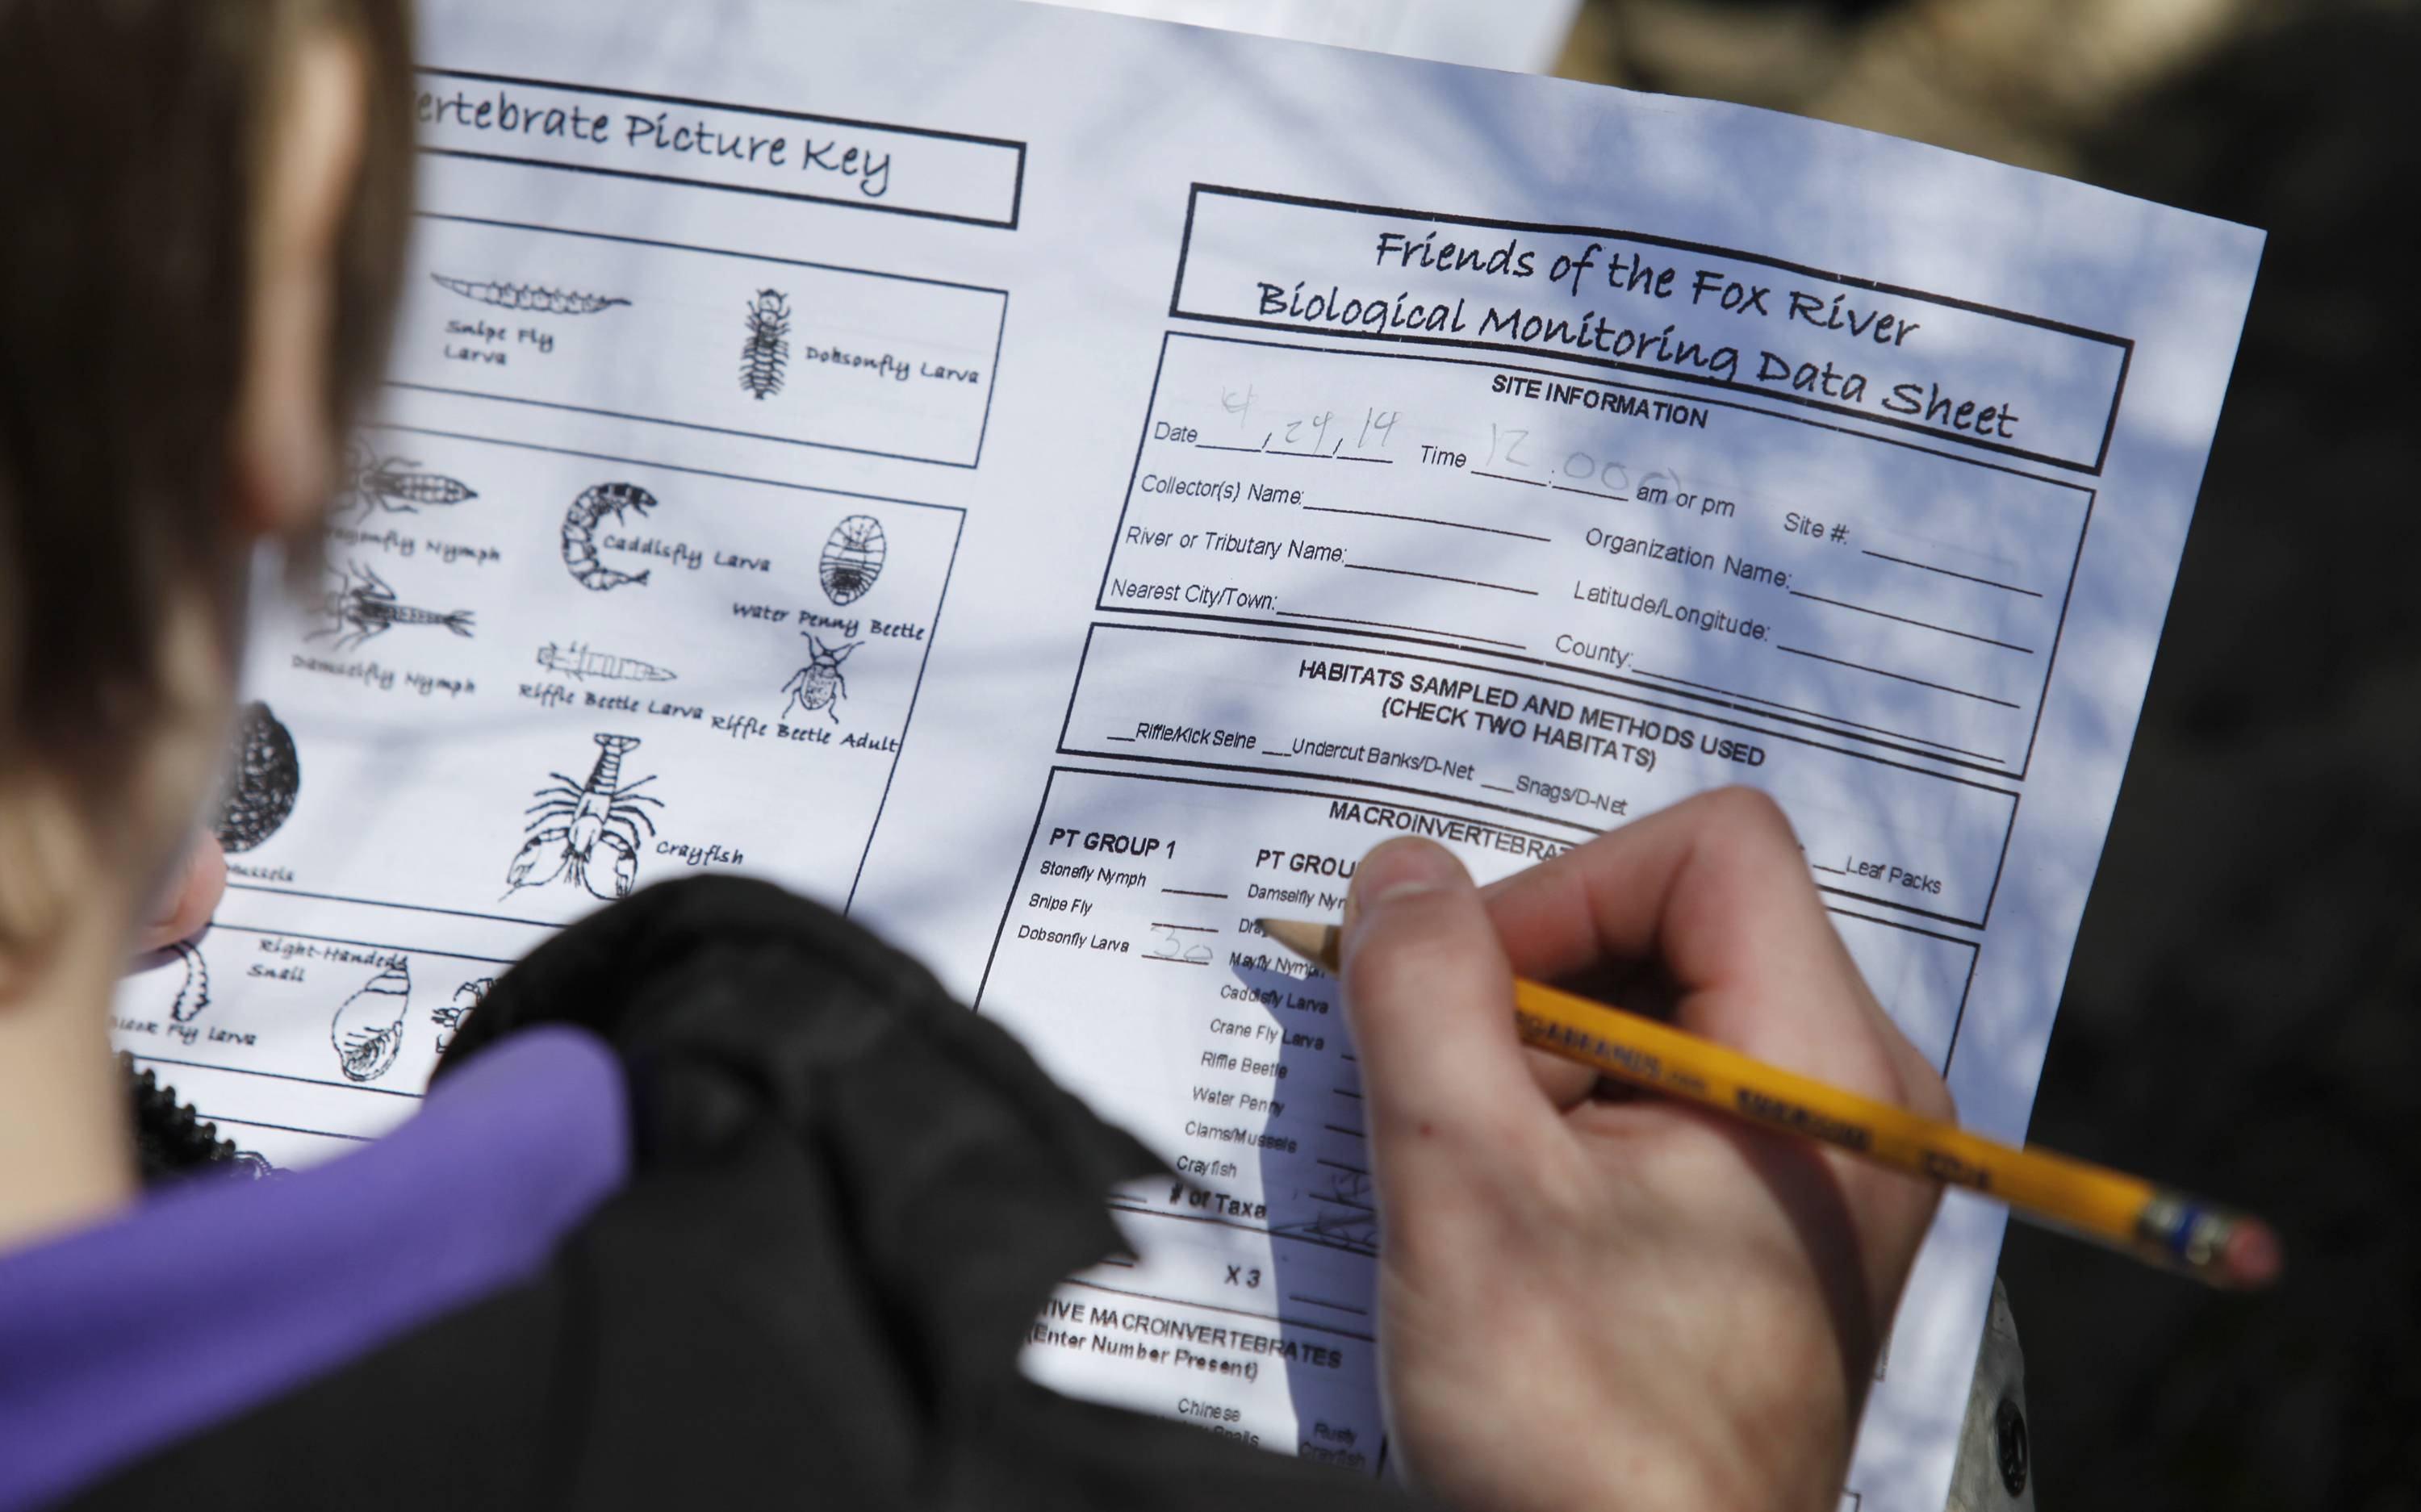 An Einstein Academy student fills out a work sheet describing the biological data he and classmates collected Tuesday from Tyler Creek in Elgin. Einstein Academy students spend a day studying Tyler Creek each Earth Day, in partnership with the Friends of the Fox River organization, to help monitor the health of the stream.